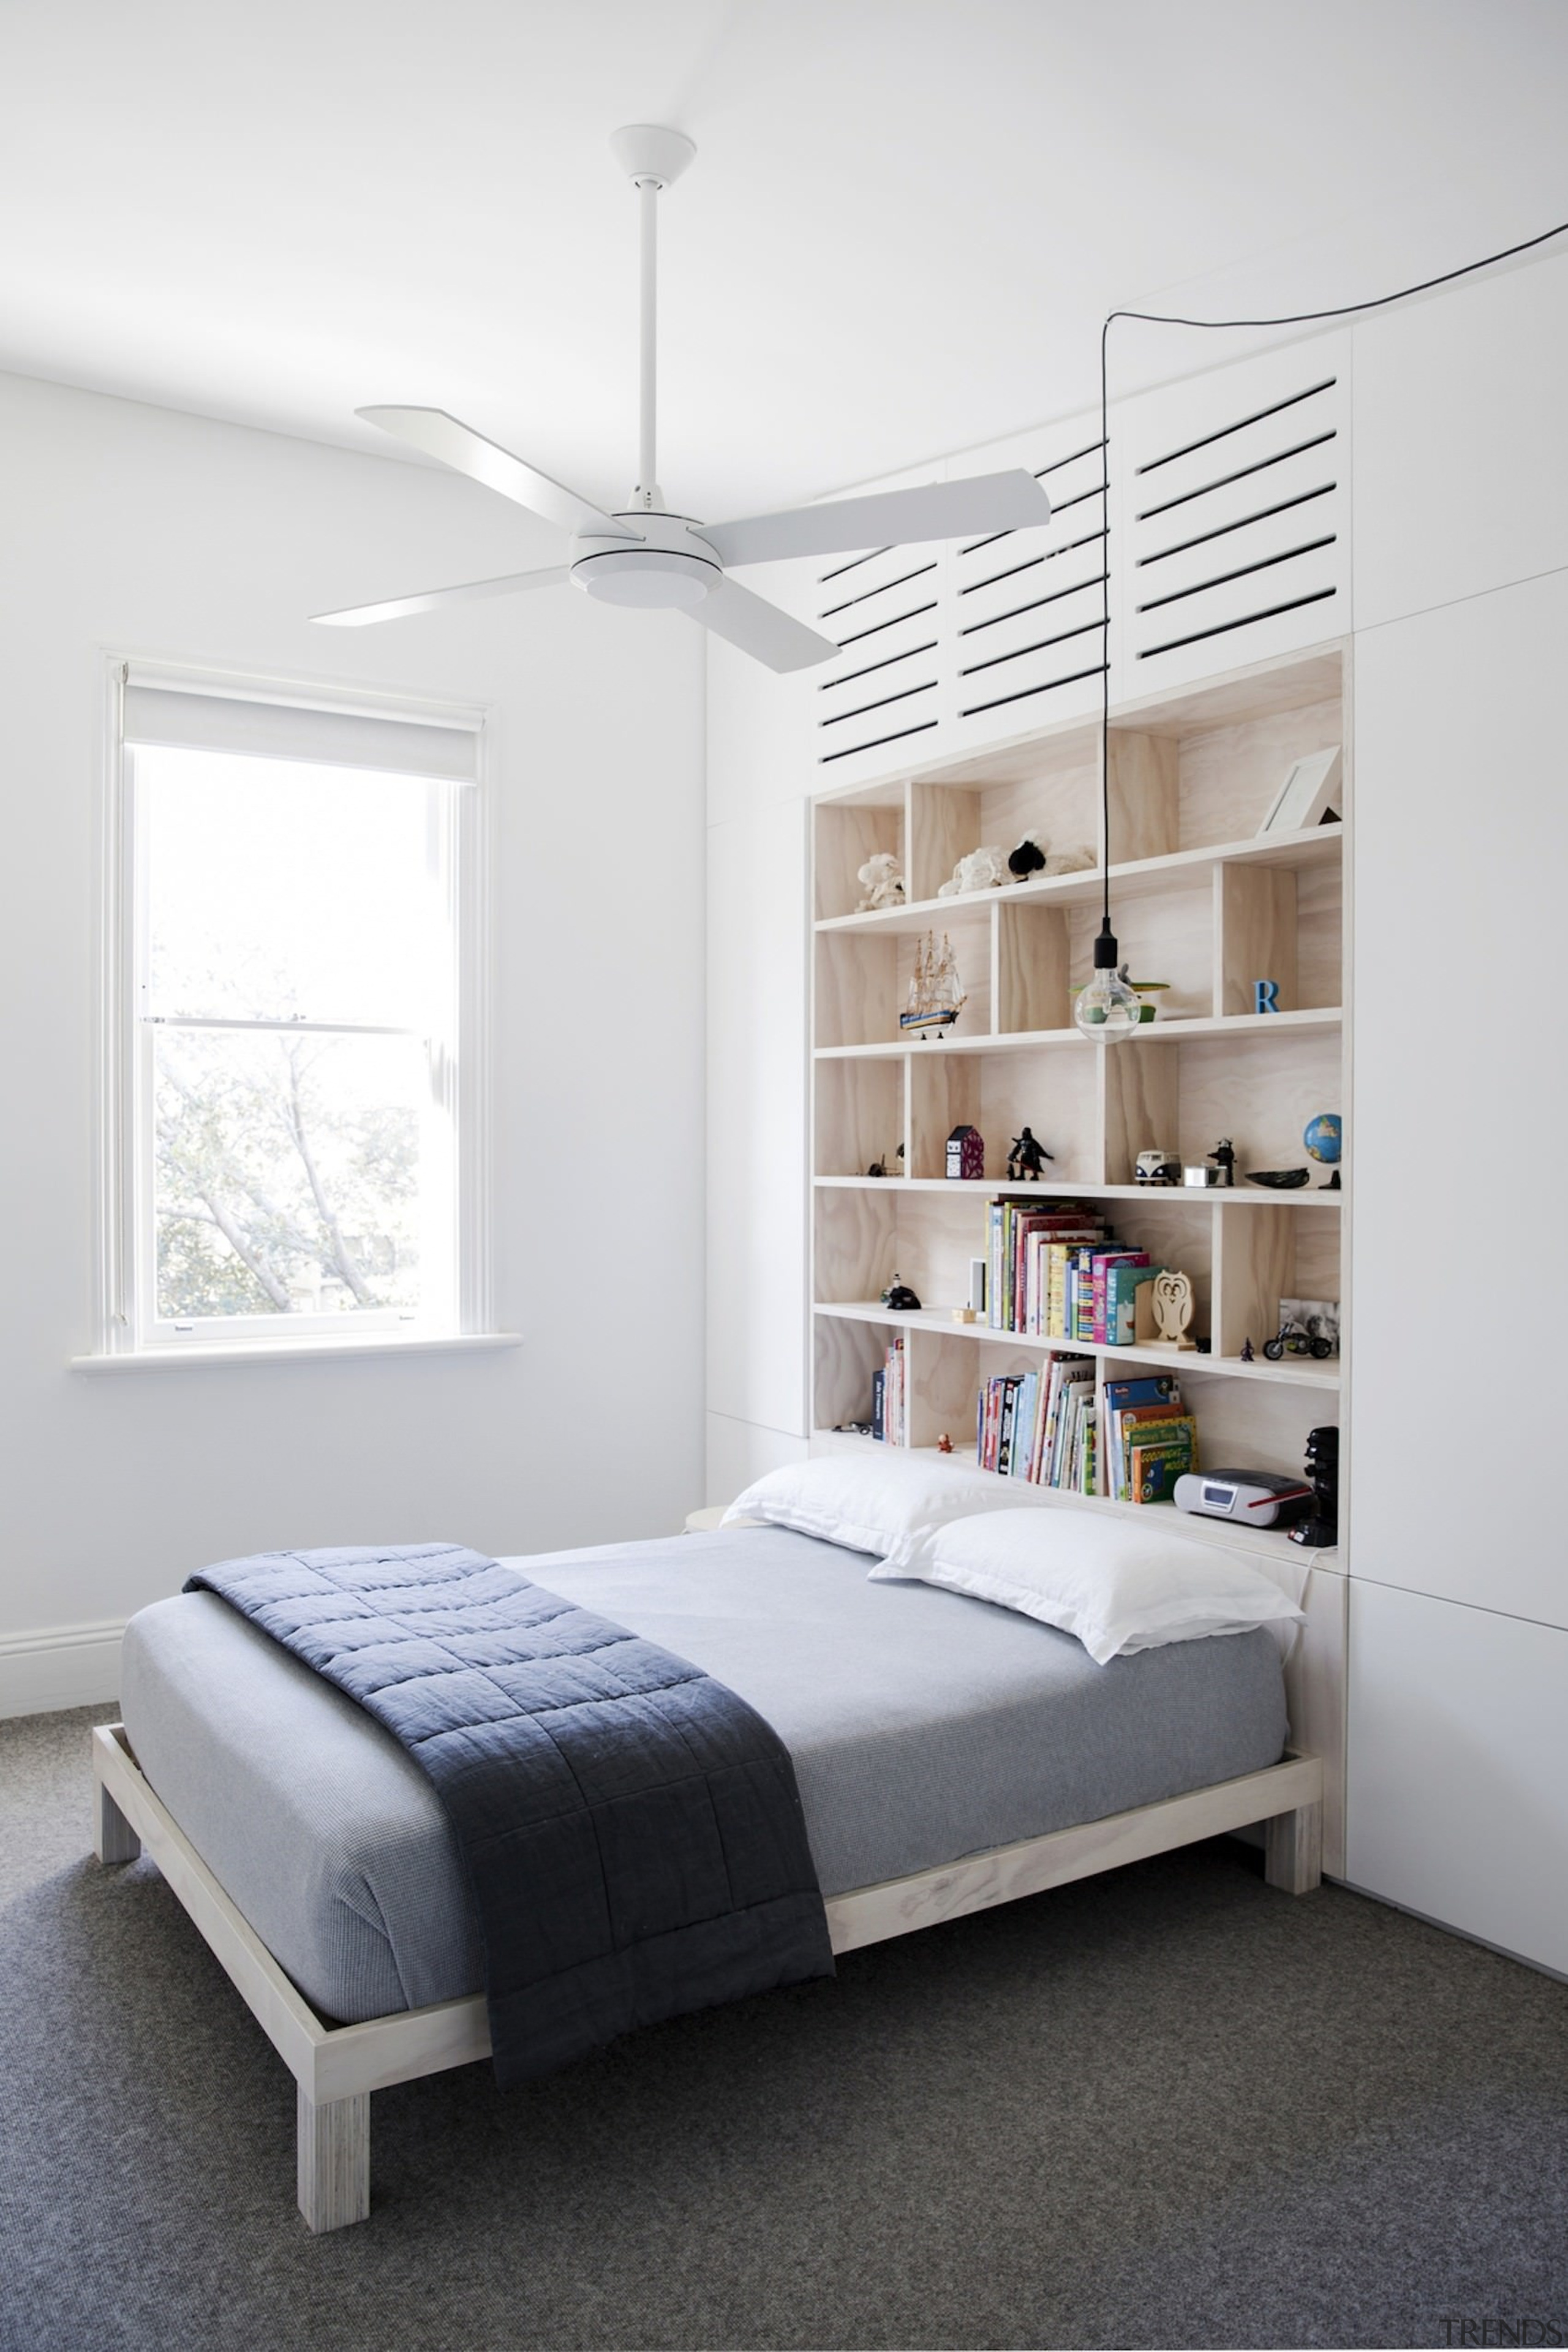 Architect: Architect PrineasPhotography by Chris Warnes bed, bed frame, bedroom, ceiling, furniture, home, interior design, room, wall, white